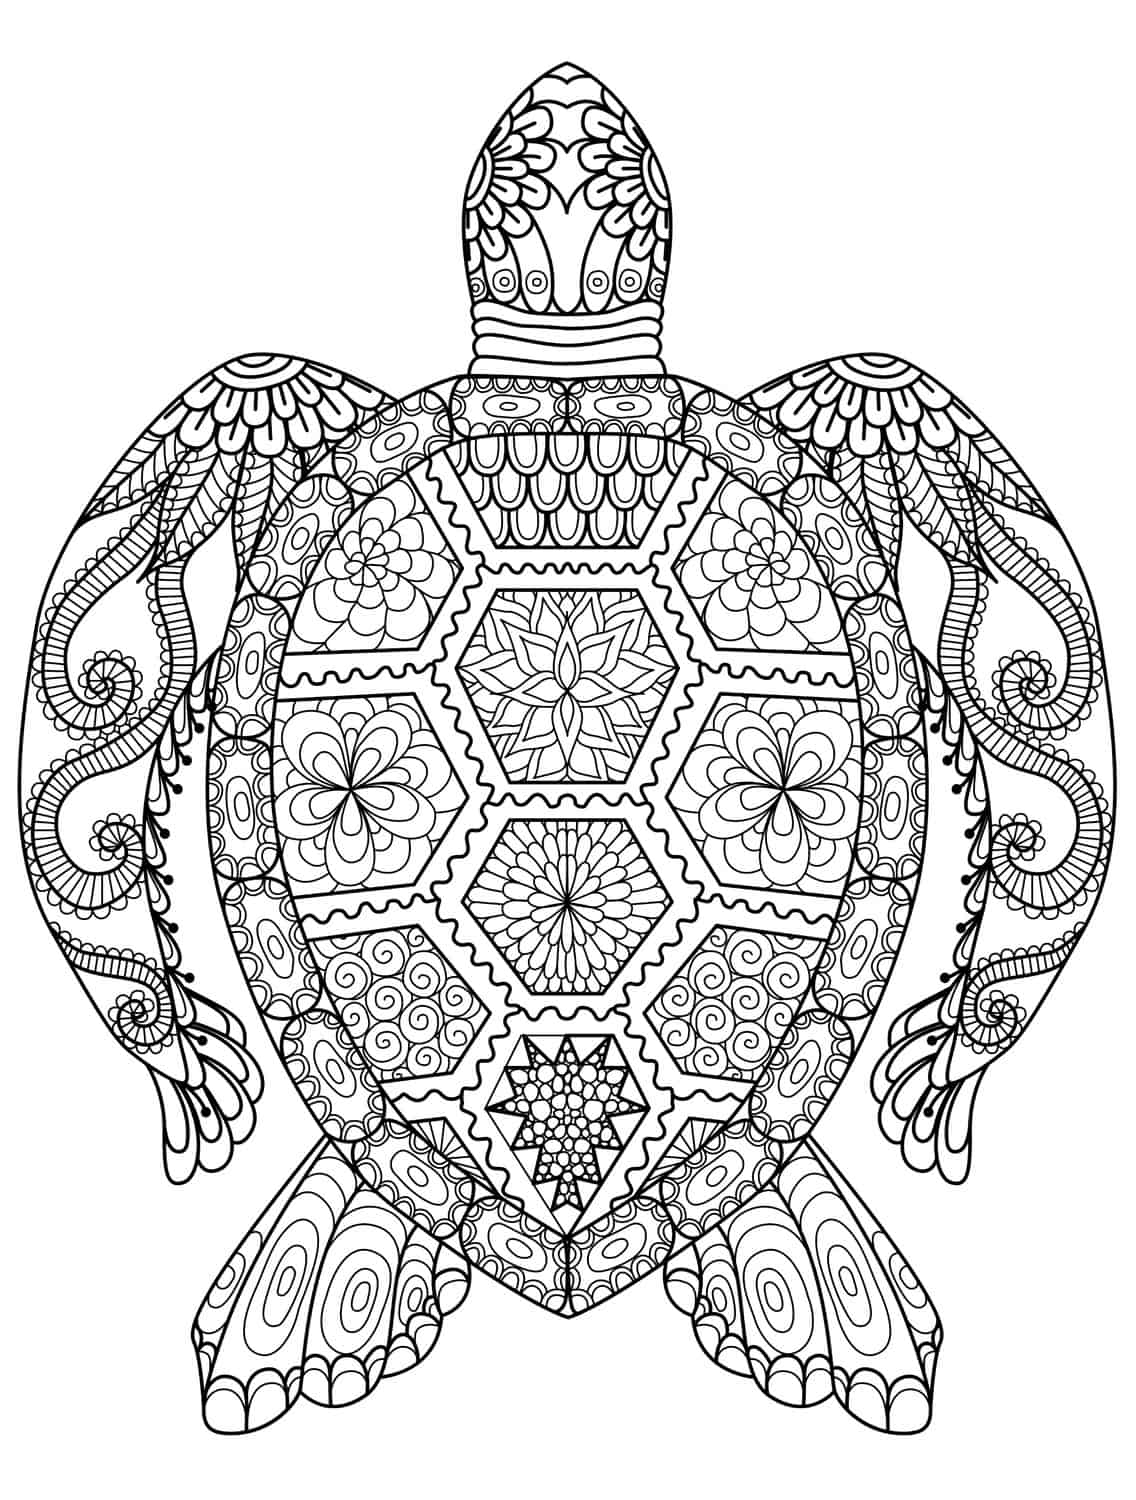 20 Gorgeous Free Printable Adult Coloring Pages - Page 3 of 22 ...